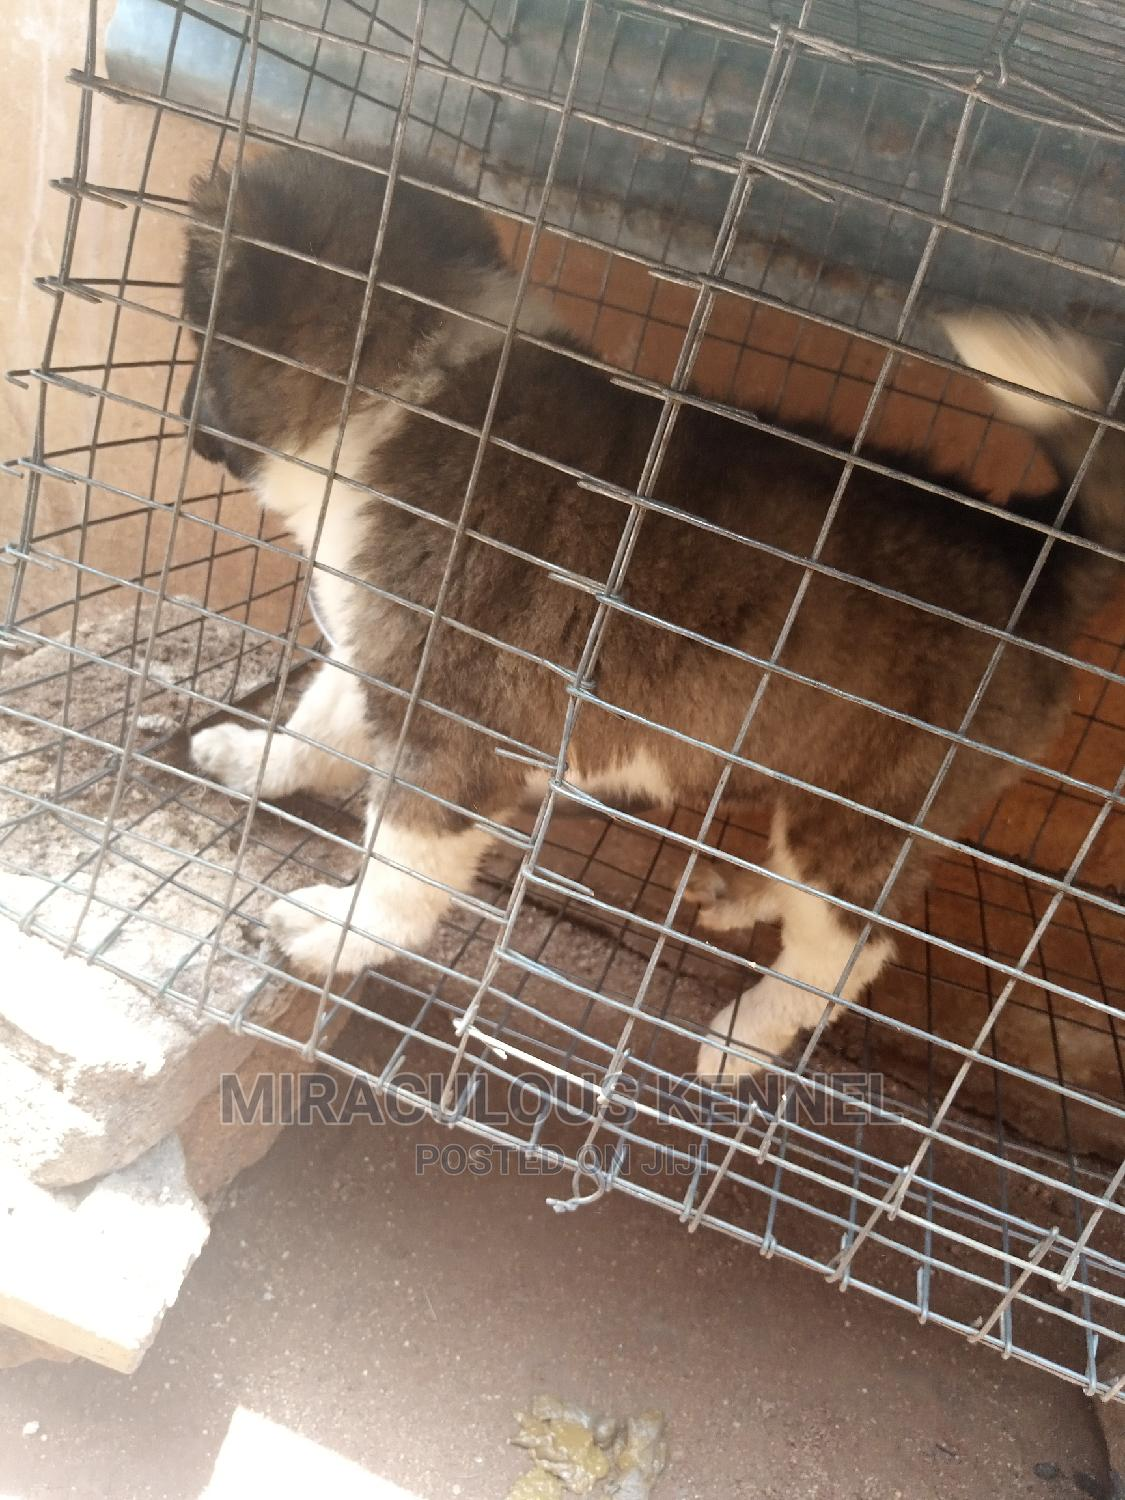 1-3 month Female Purebred Caucasian Shepherd | Dogs & Puppies for sale in Ika South, Delta State, Nigeria